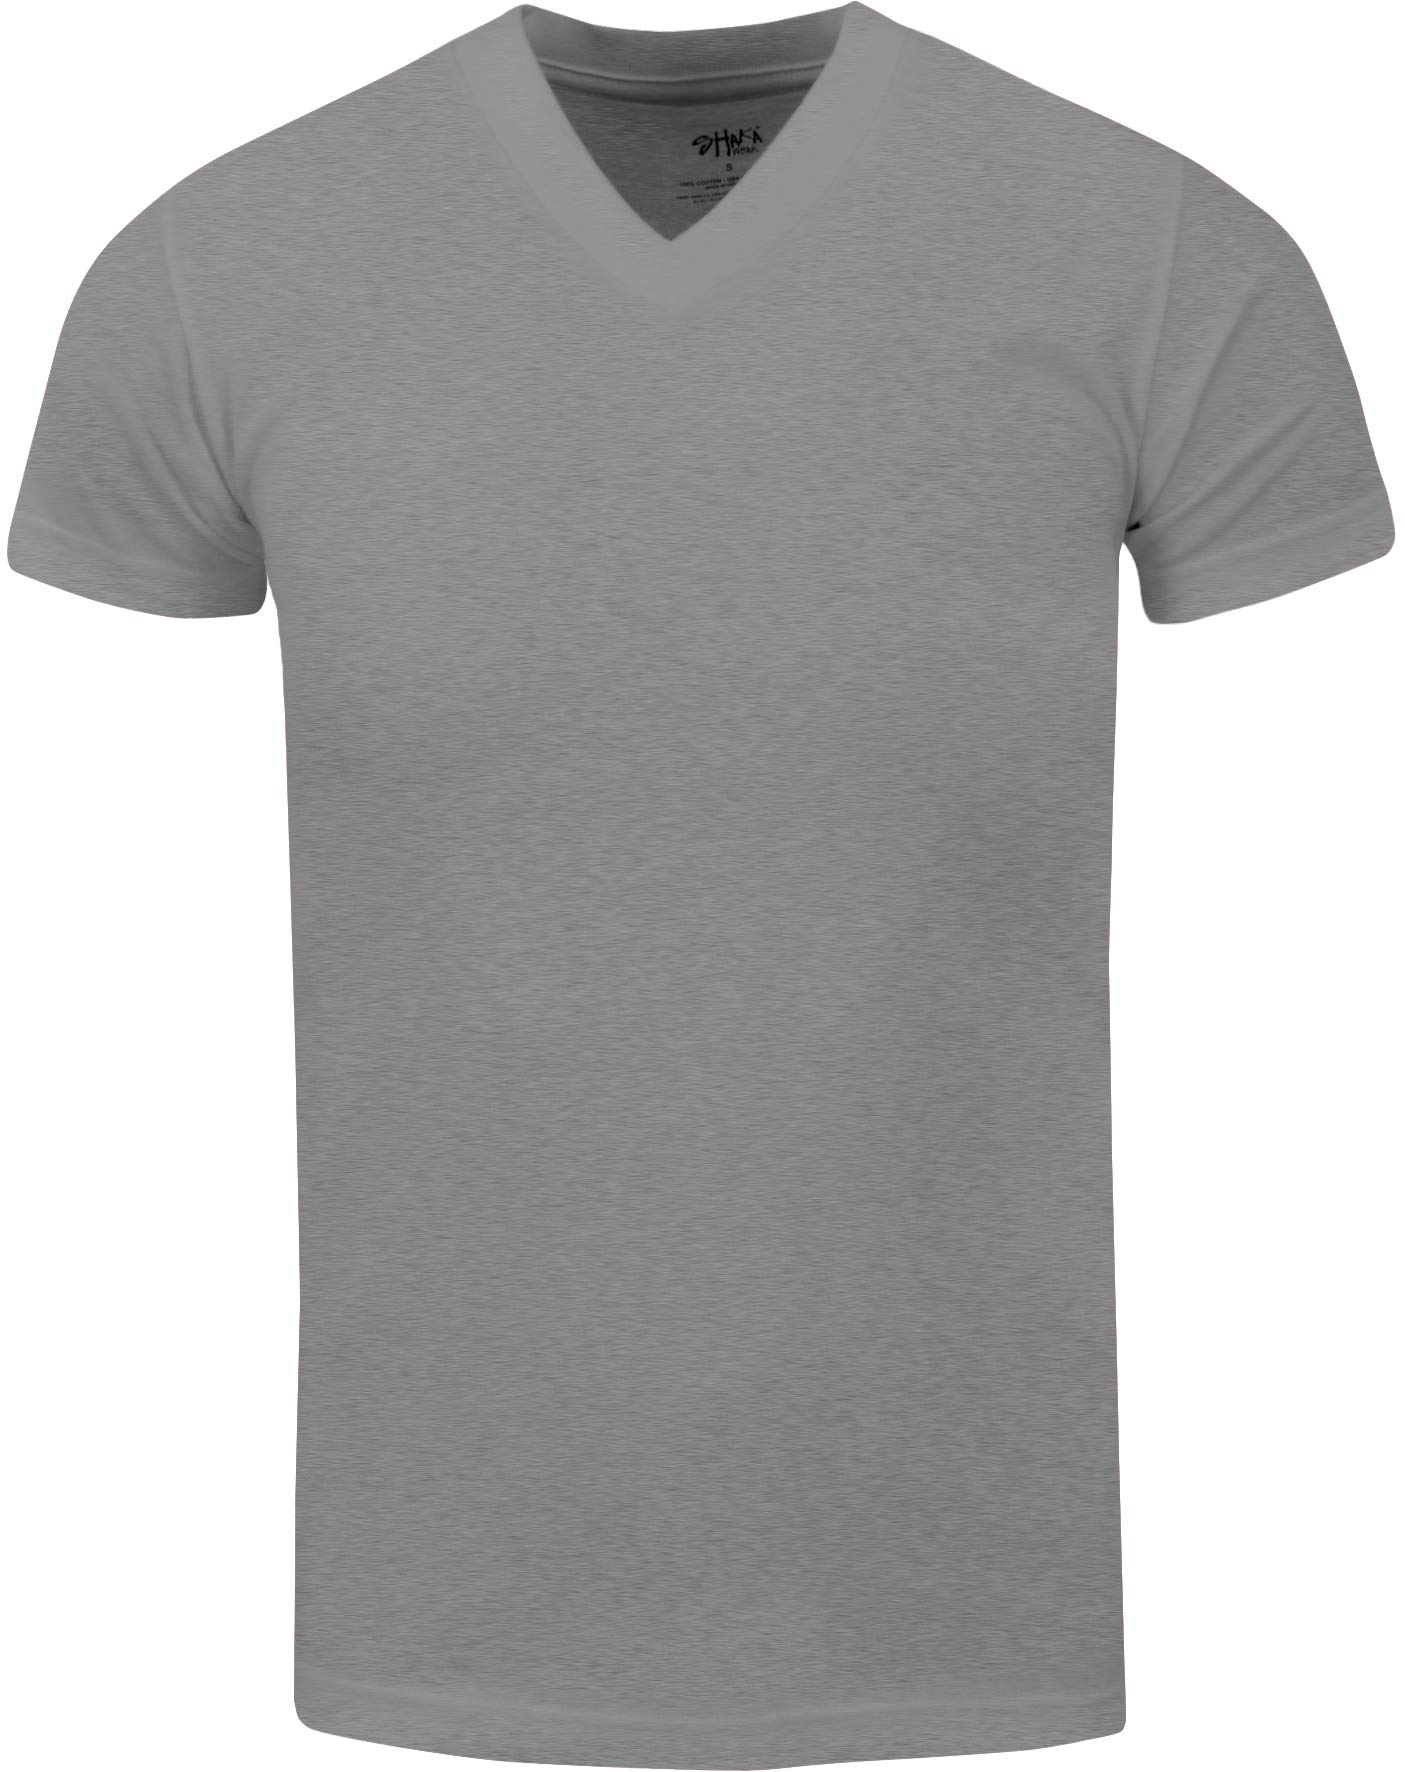 VNS05_ Active Mens Premium Cotton Heavy Weight V Neck Basic T Shirt H.Grey